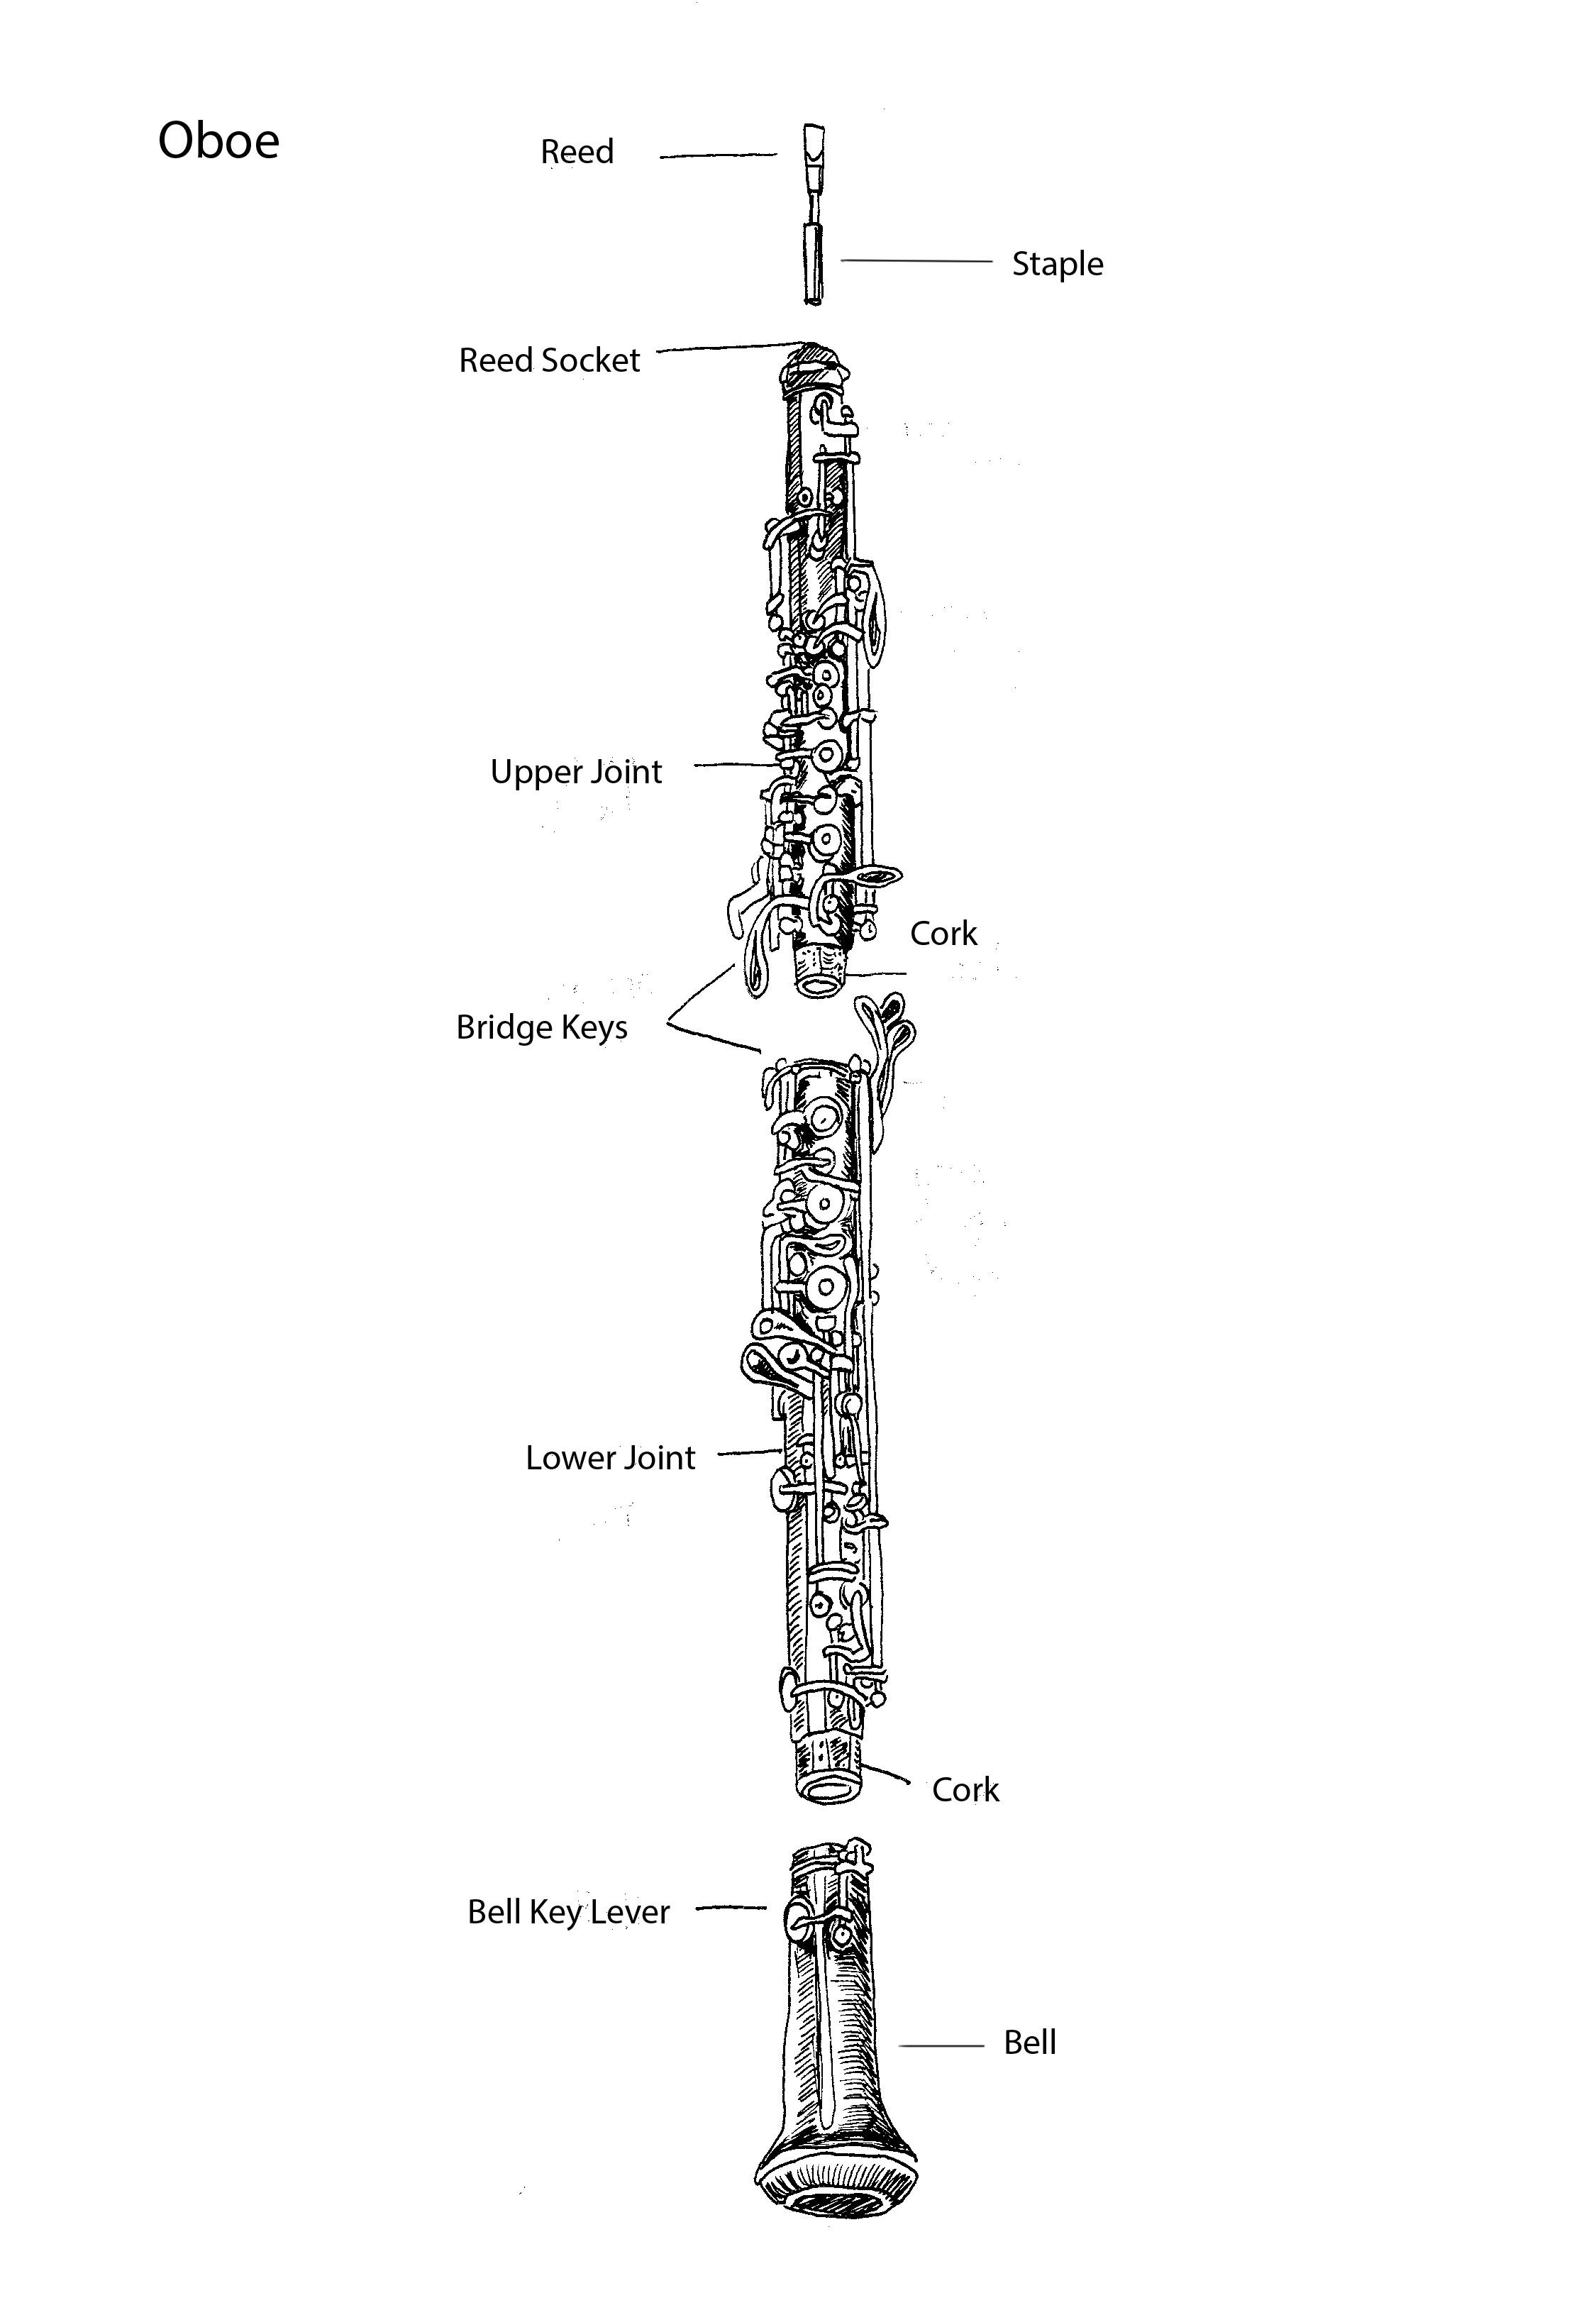 Parts Of The Oboe By Tracie Noles Ross